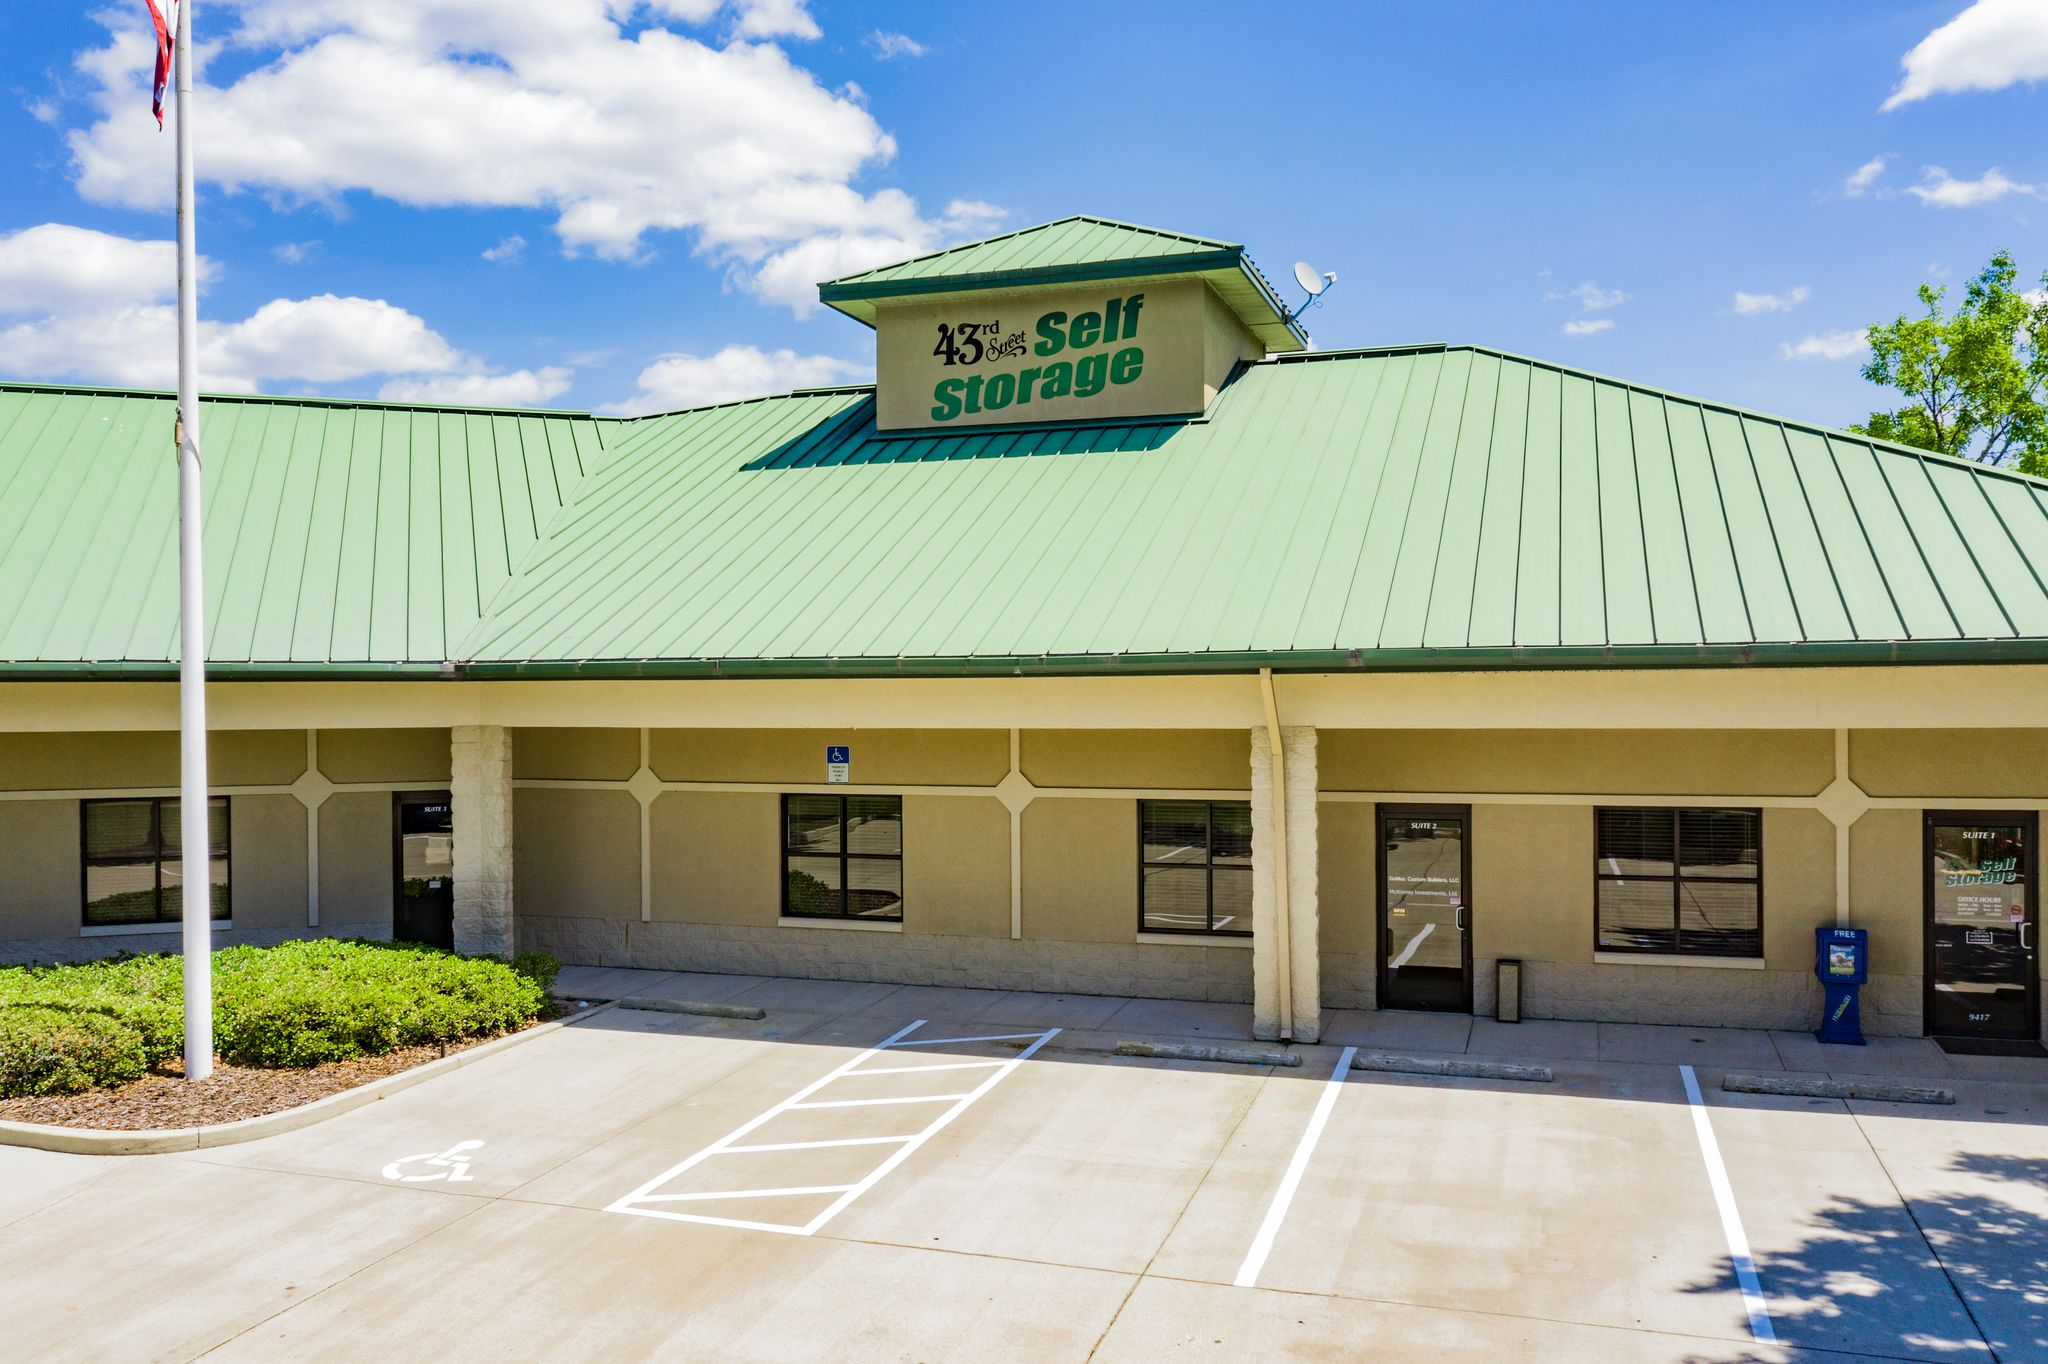 Self storage in Gainesville, FL